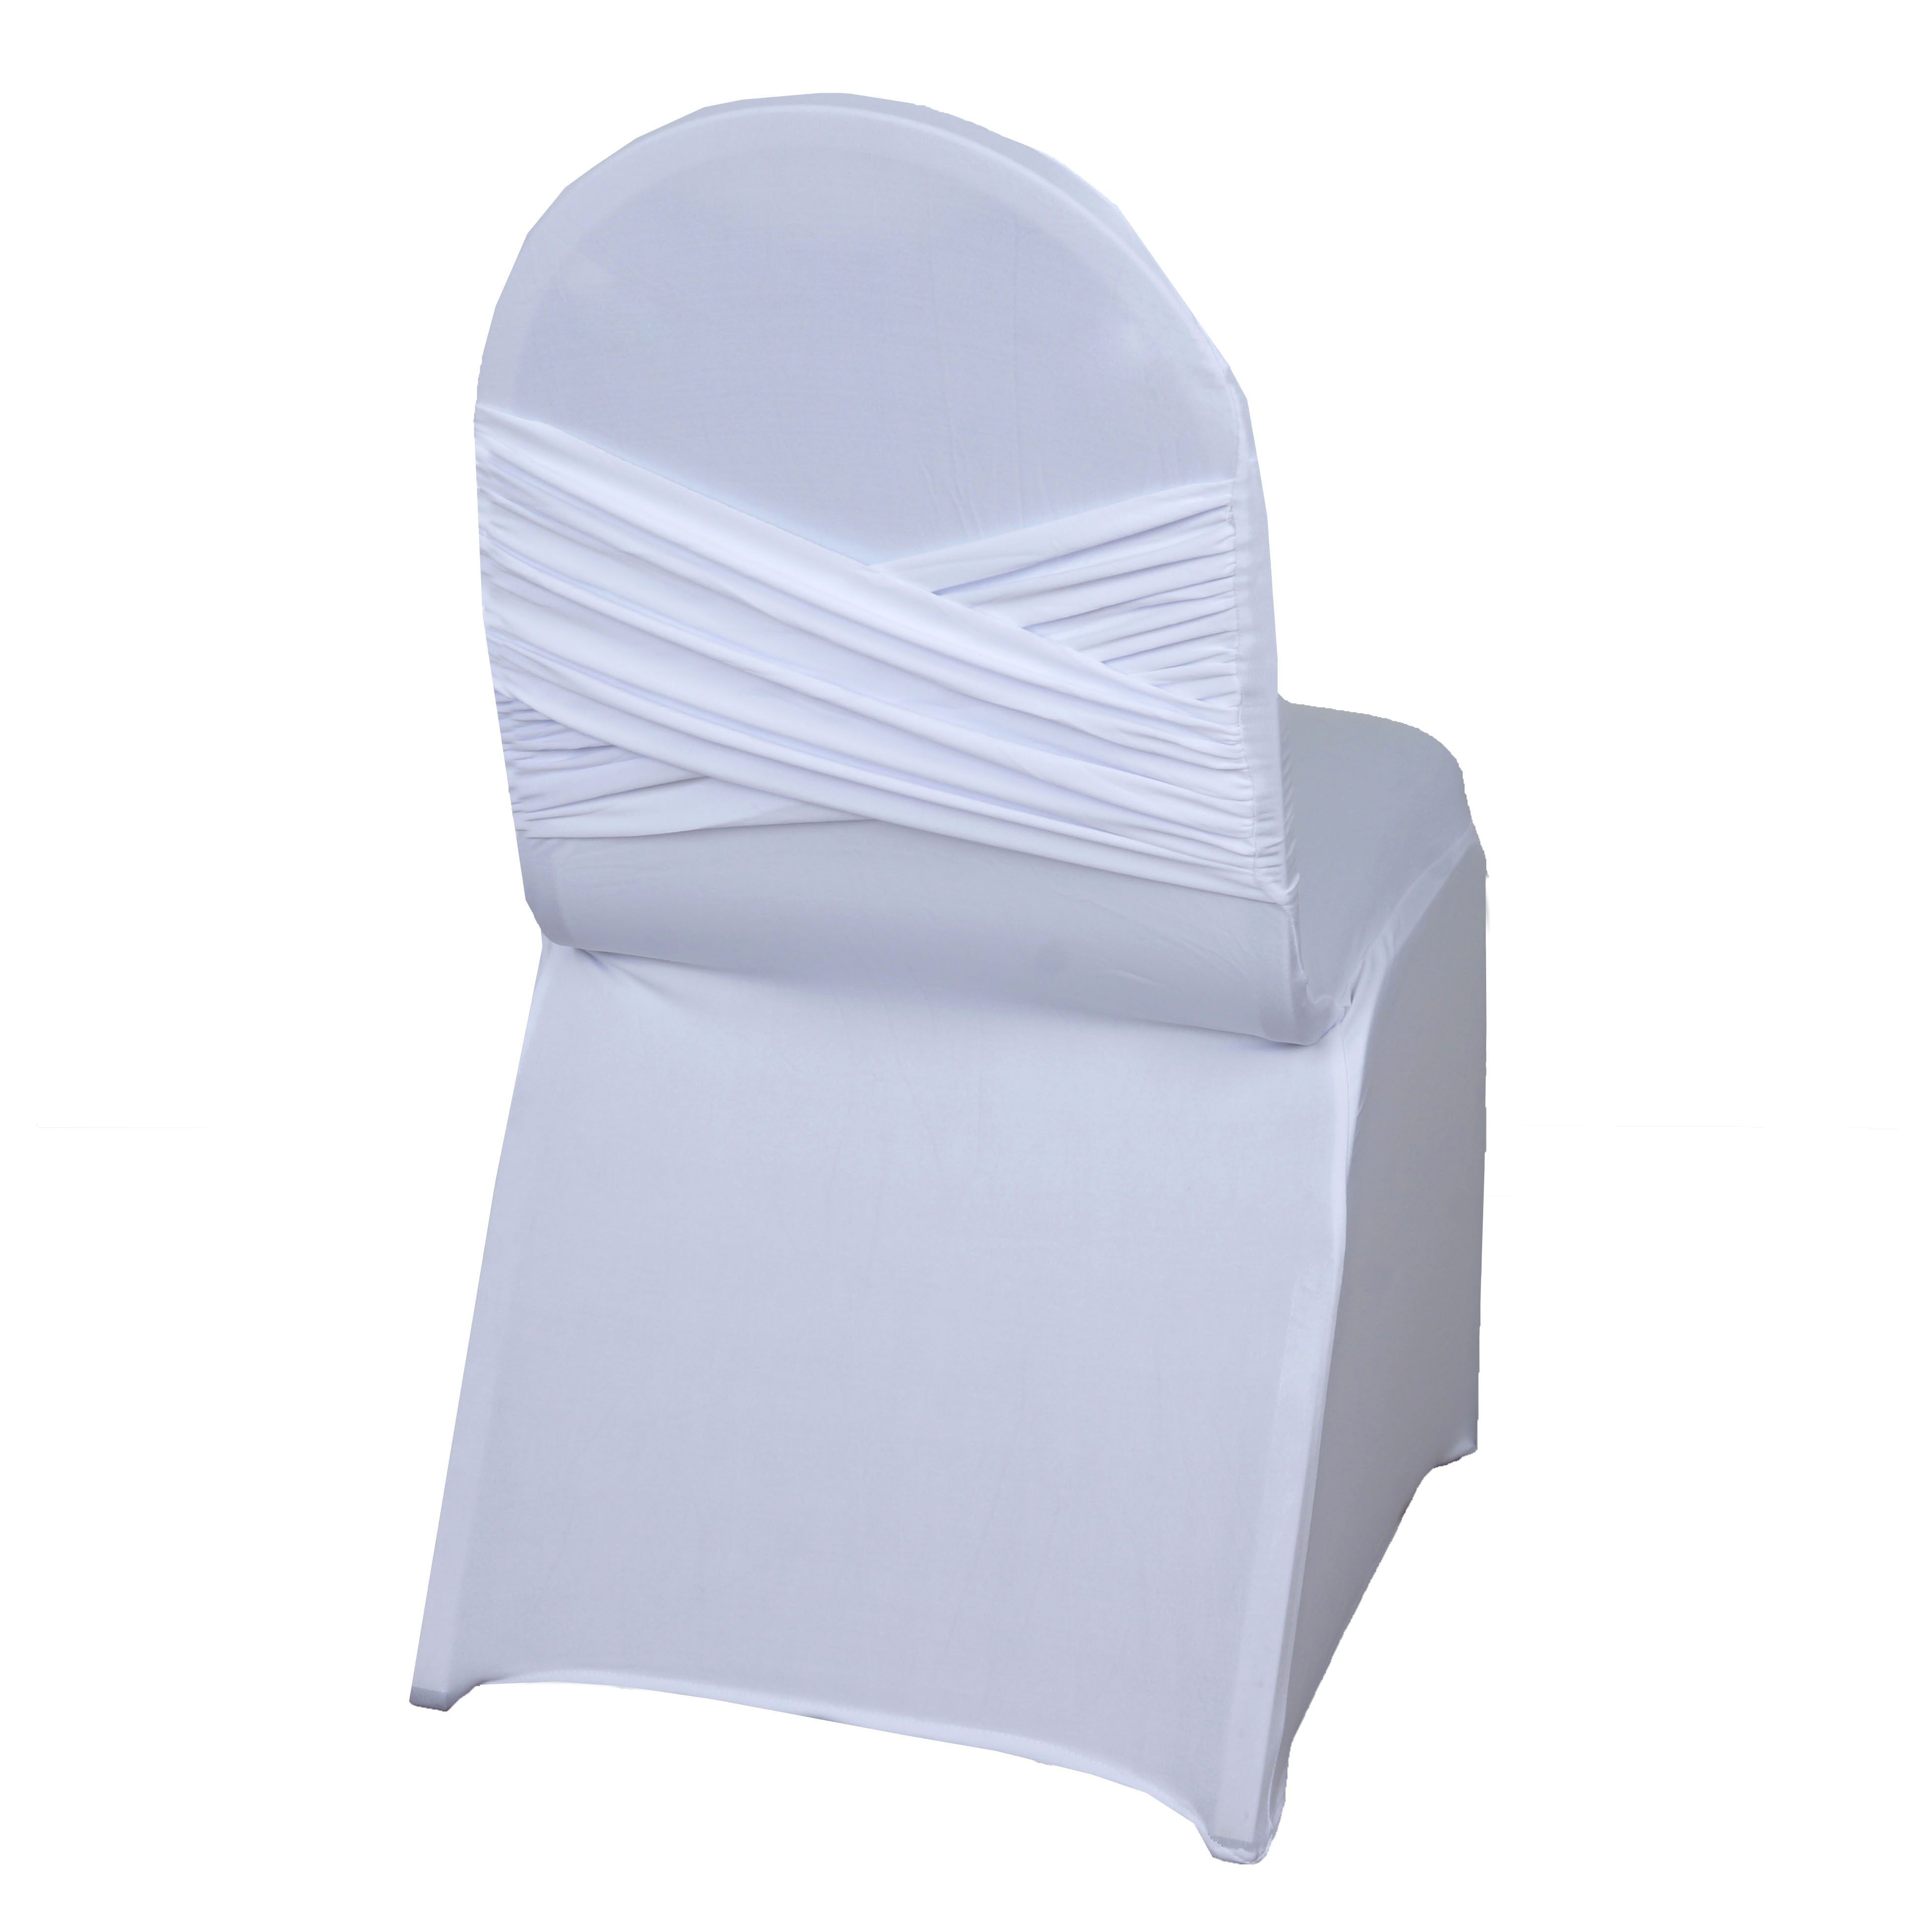 chair covers event garelick boat chairs 50 pcs madrid banquet with crisscross design